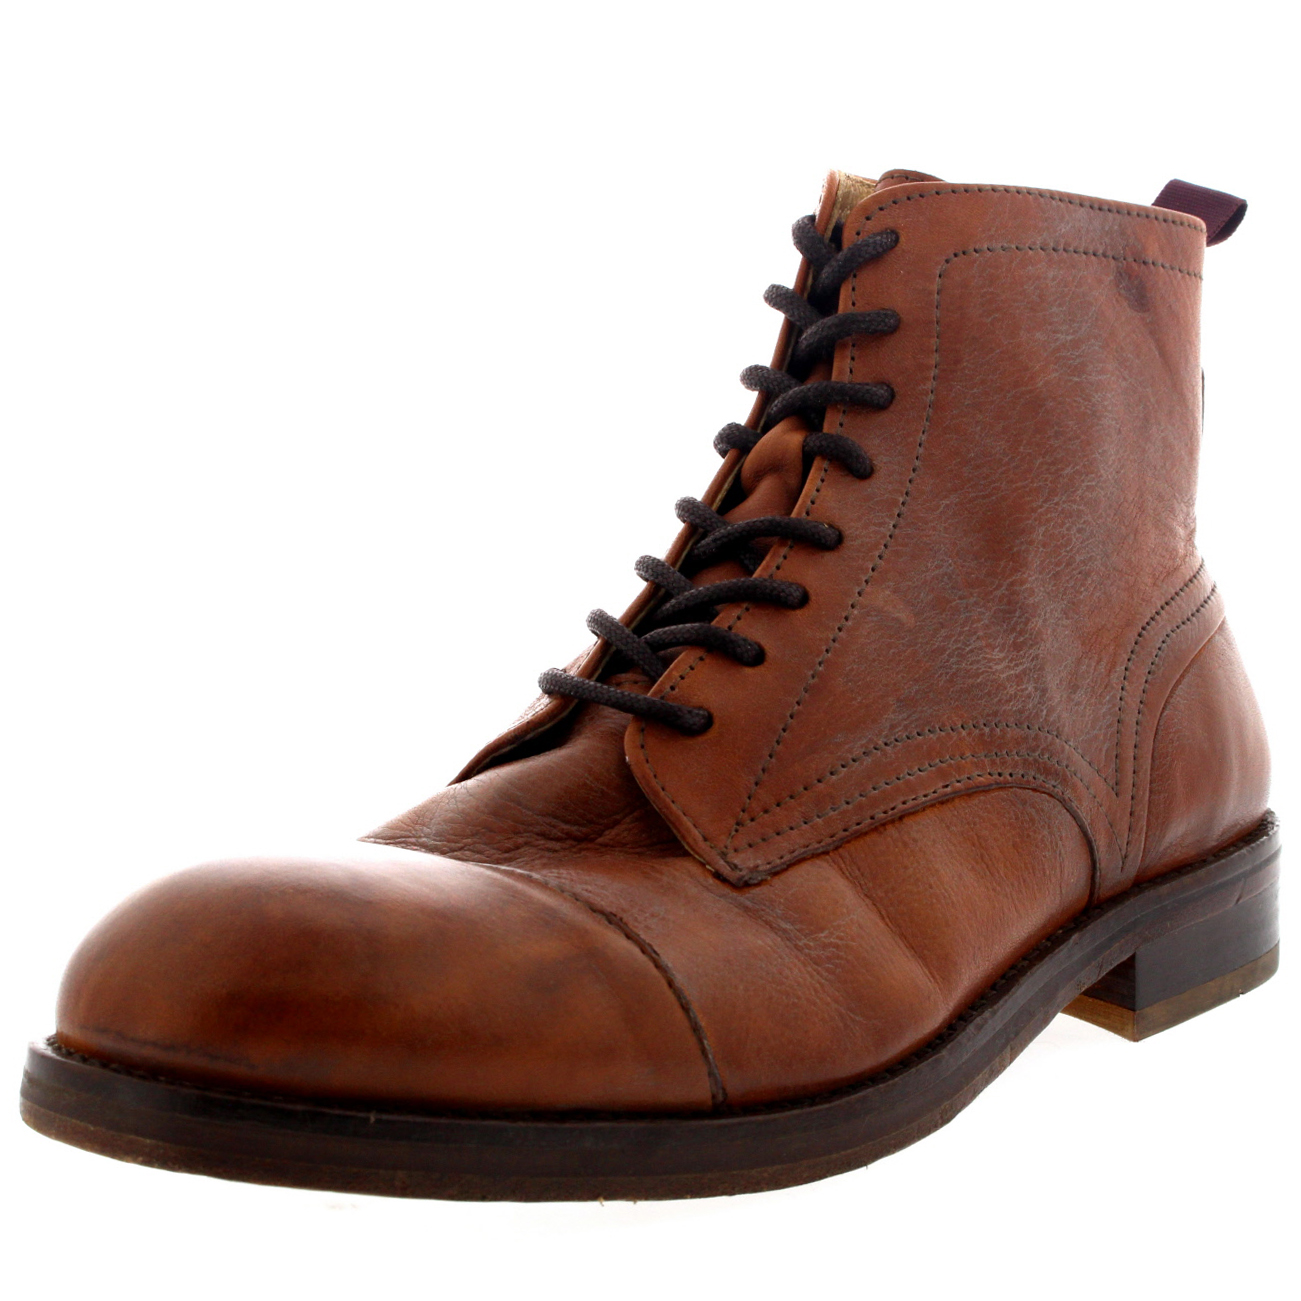 Find great deals on eBay for shoes and boots. Shop with confidence.